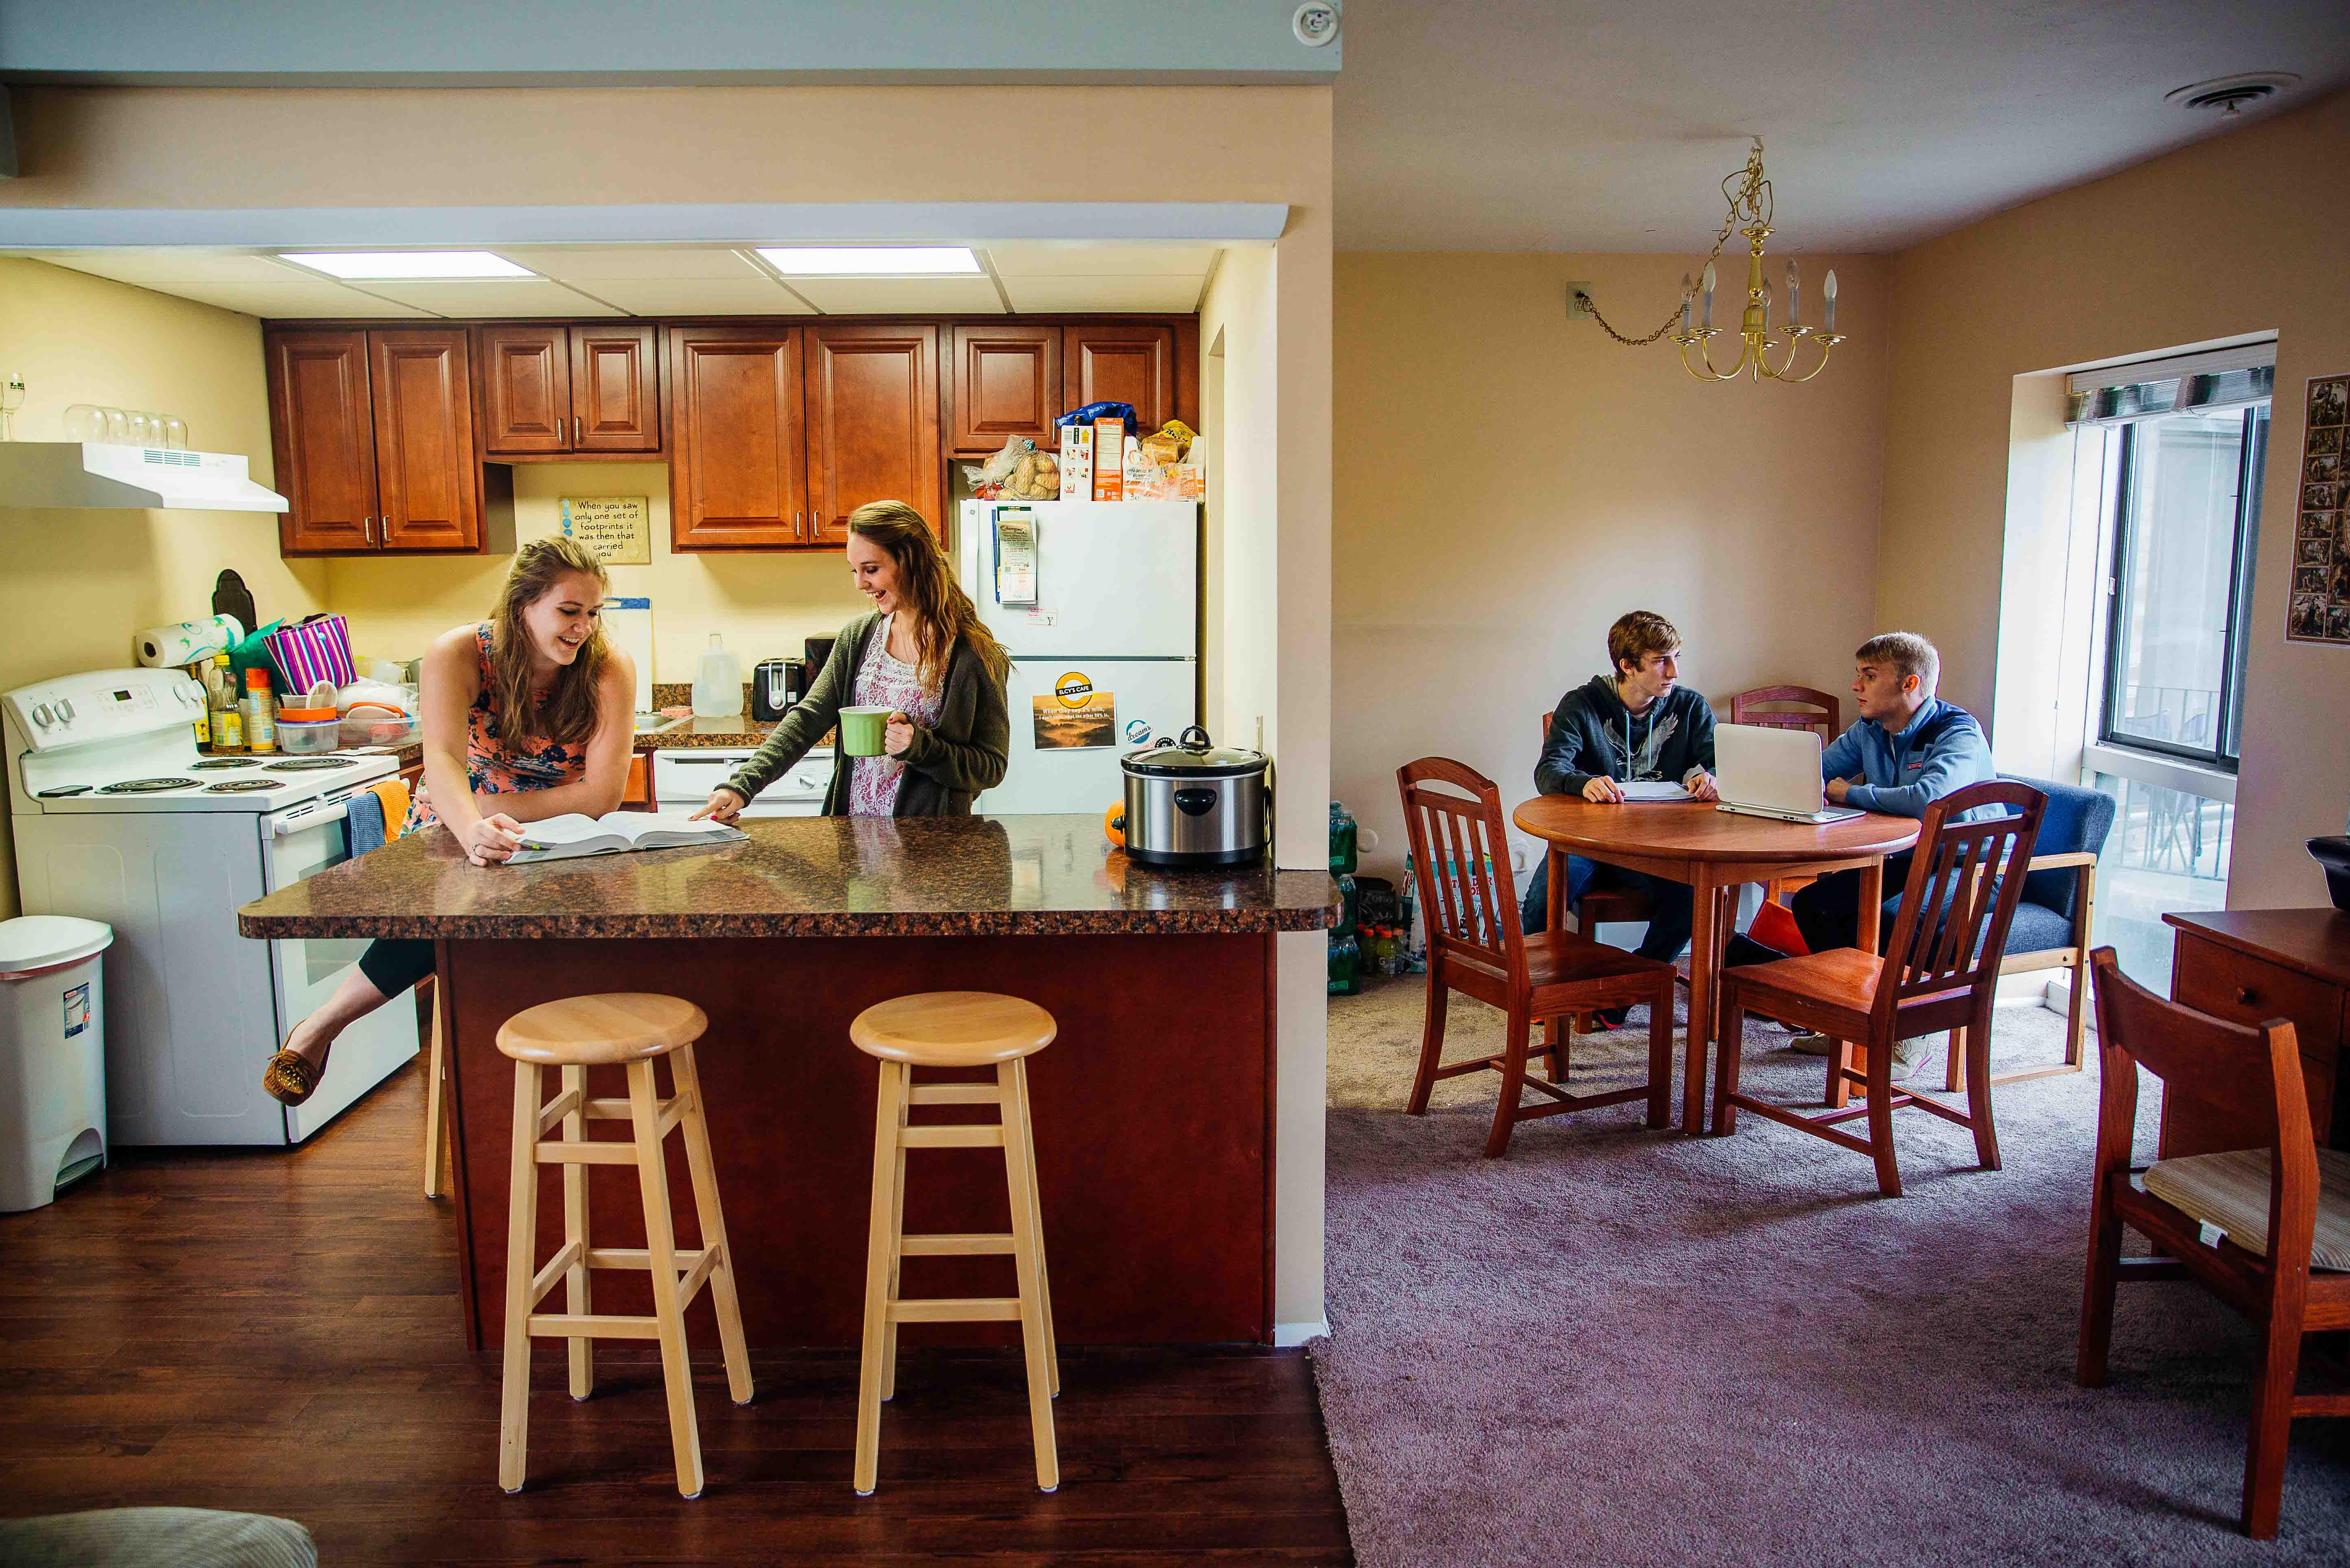 Two female student talk in kitchen while two male students sit at table.